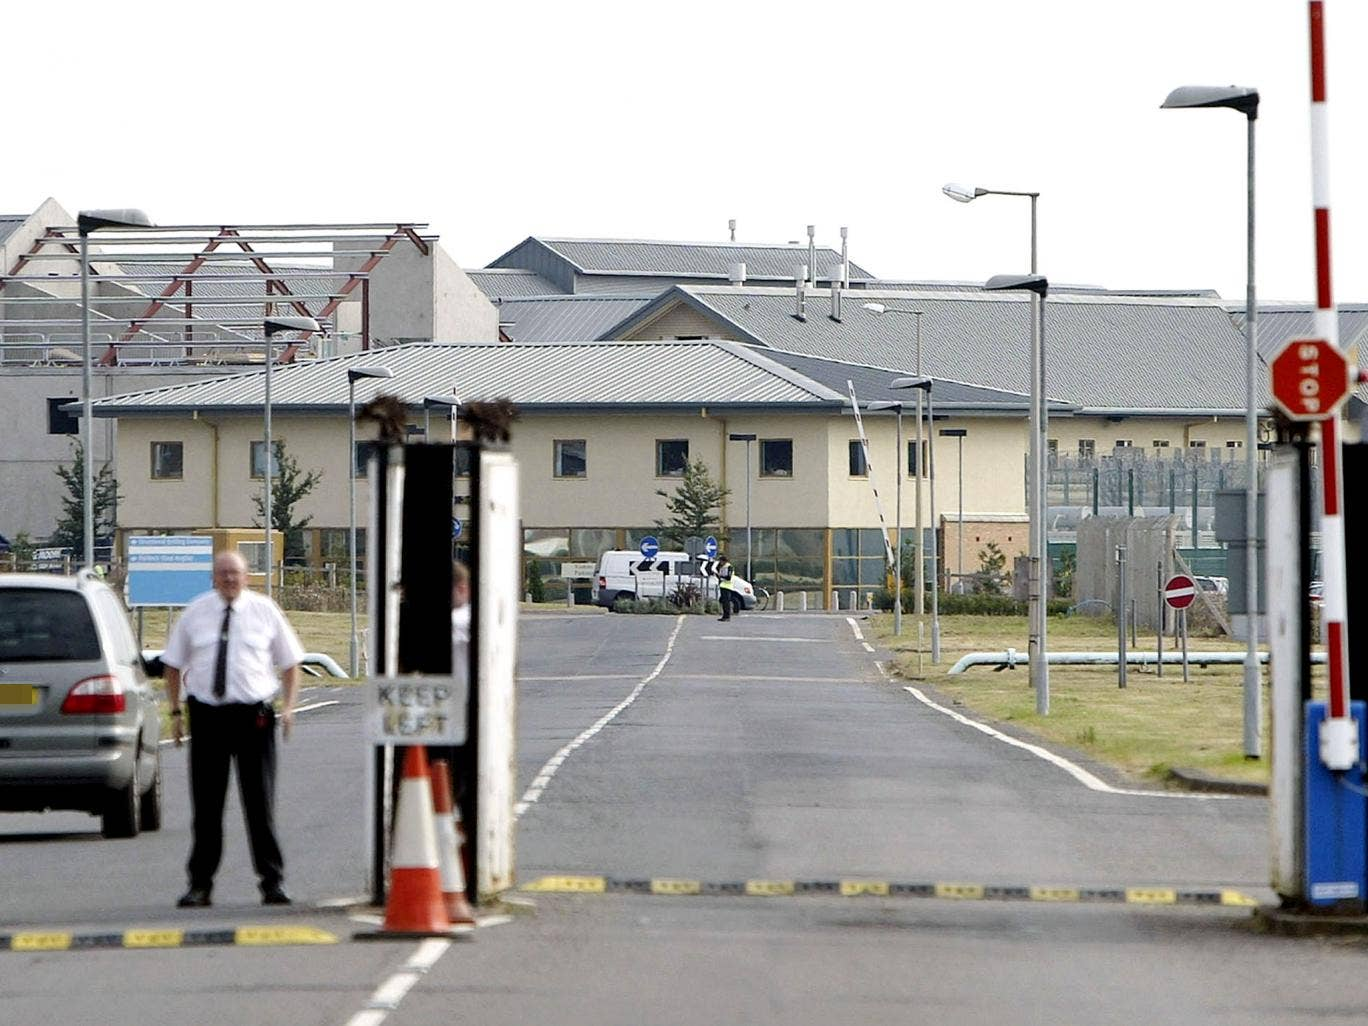 Yarl's Wood in Bedfordshire, Britain's largest Immigration Removal Centre